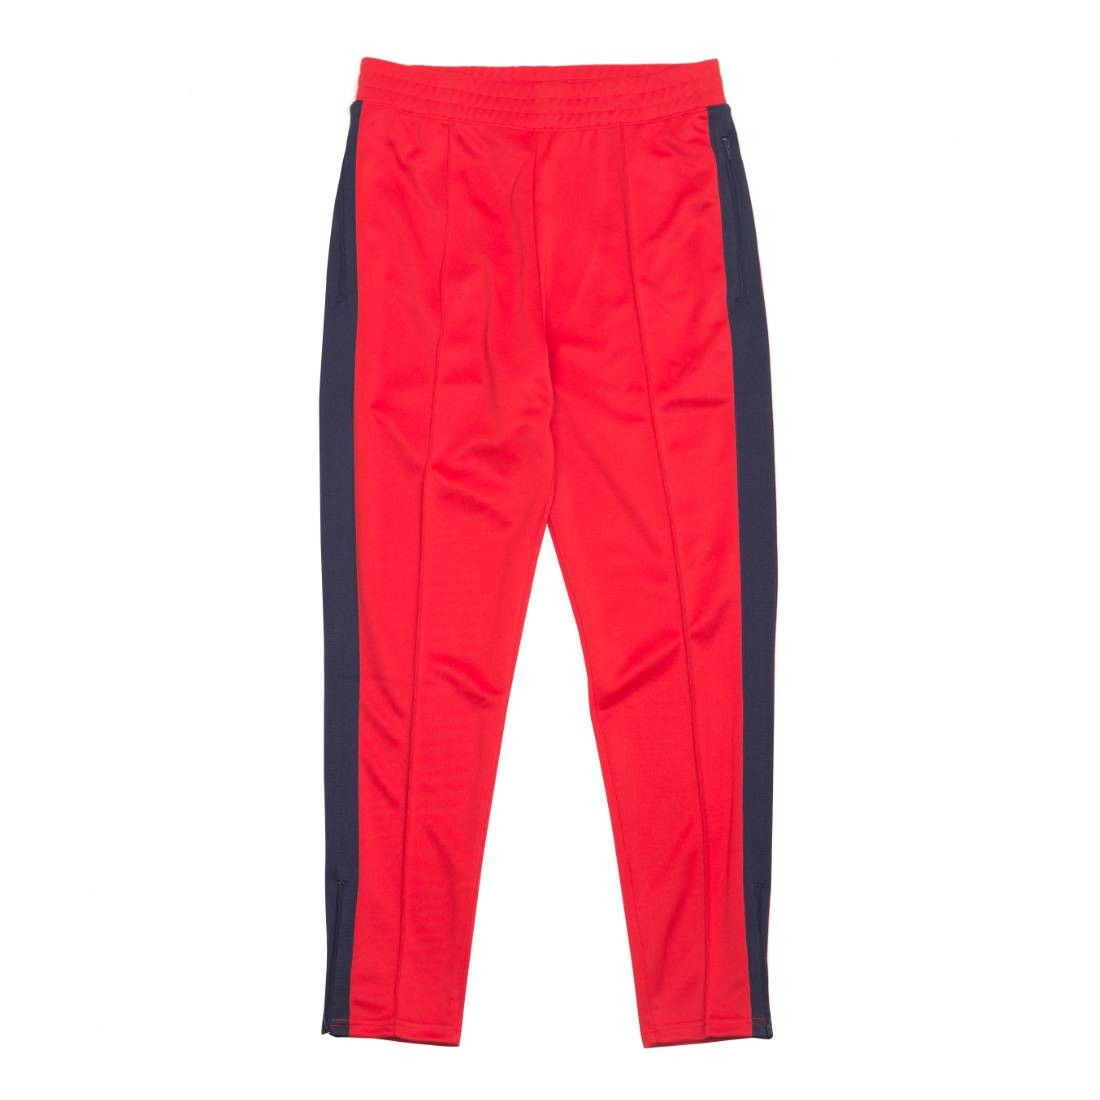 Nike Men M Nrg K Track Pant (university red / blackened blue)